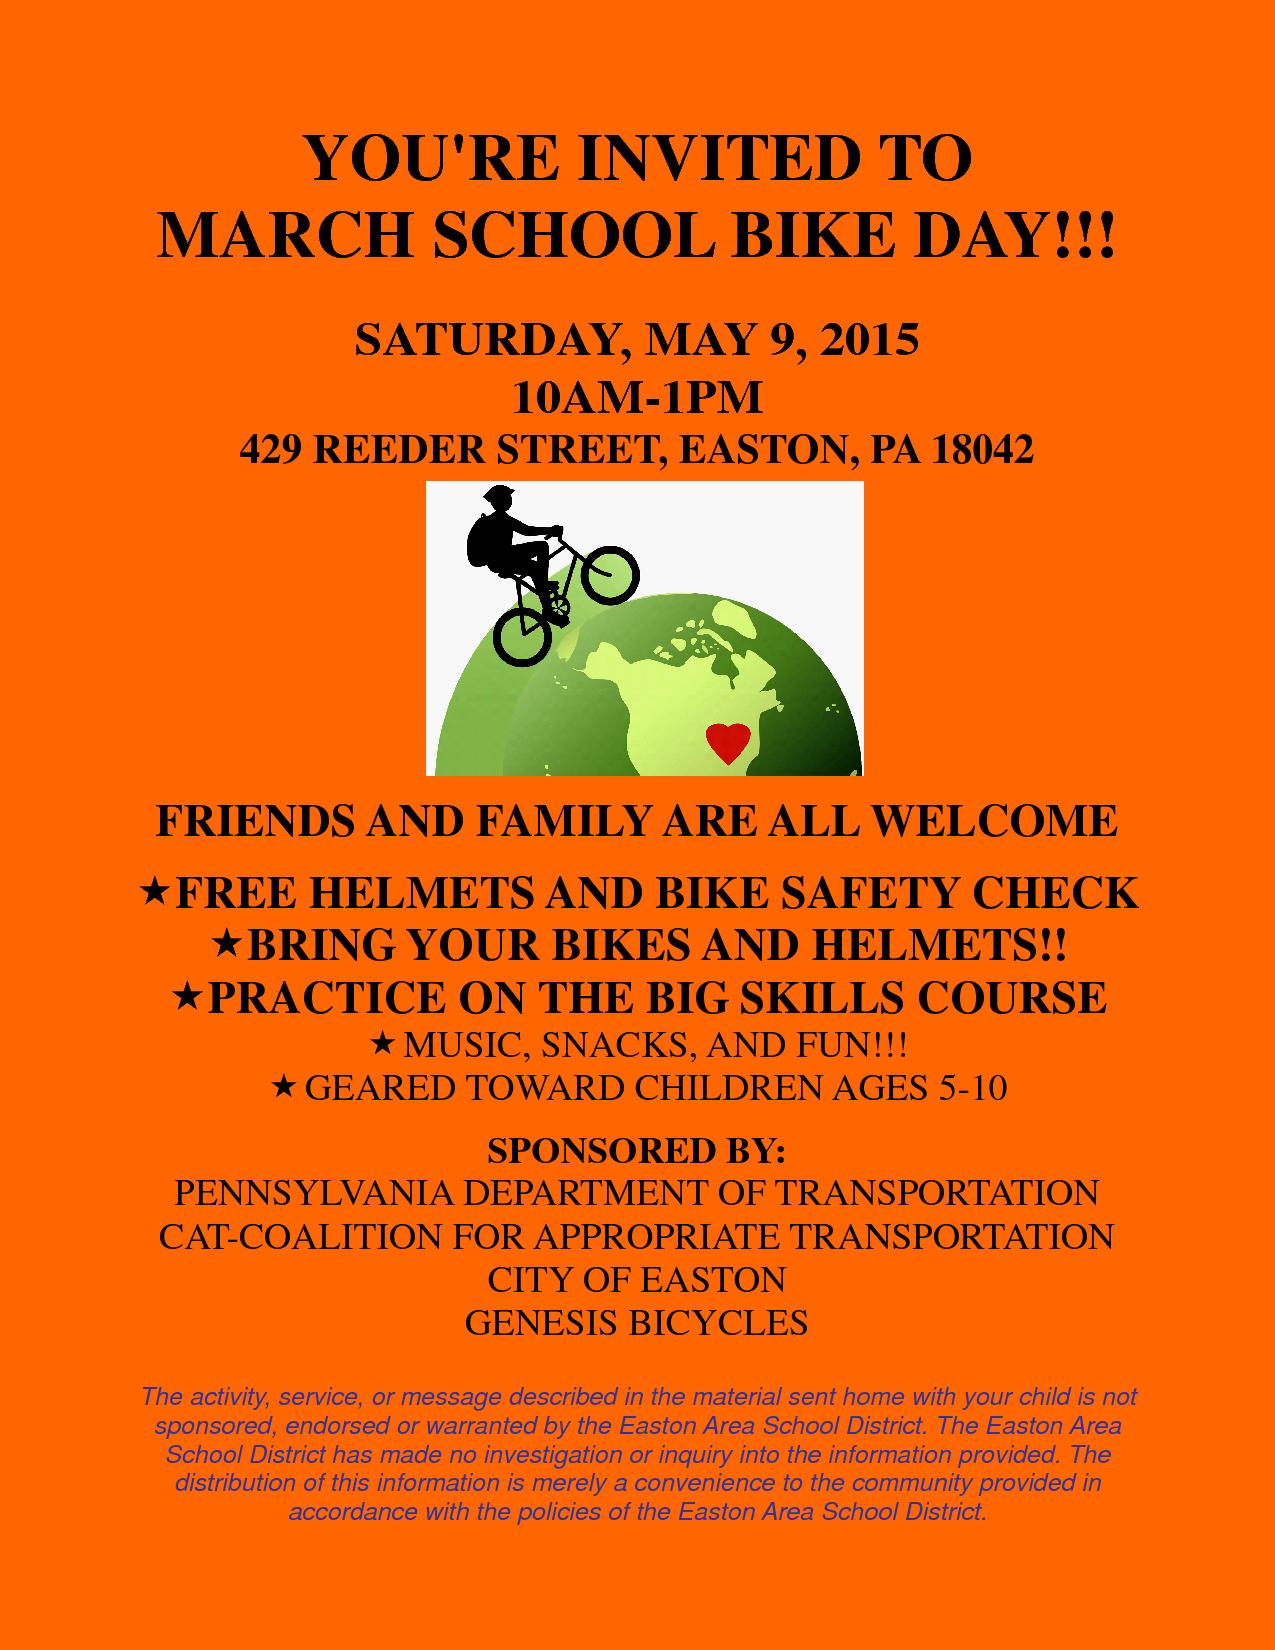 Bike Day at March Elementary School – Saturday May 9th, 10am-1pm